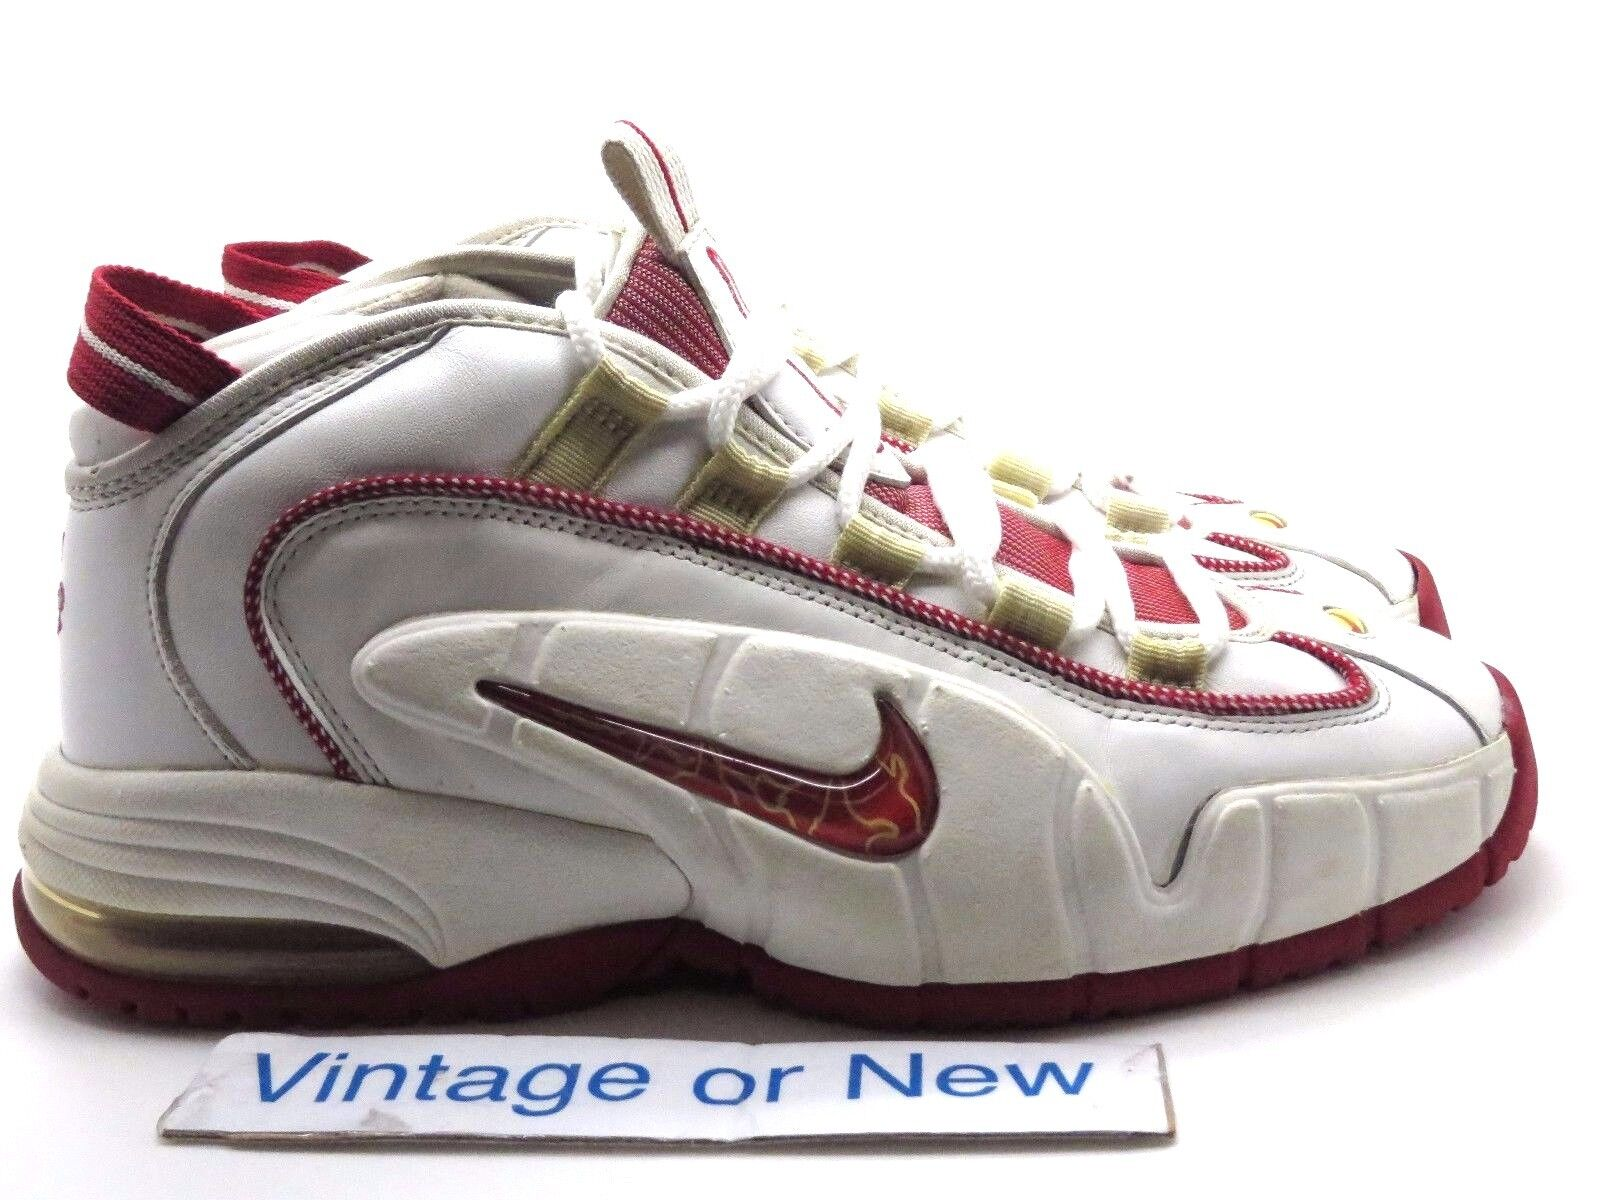 Nike Air Max Penny 1 I White Varsity Red 2005 sz 10.5